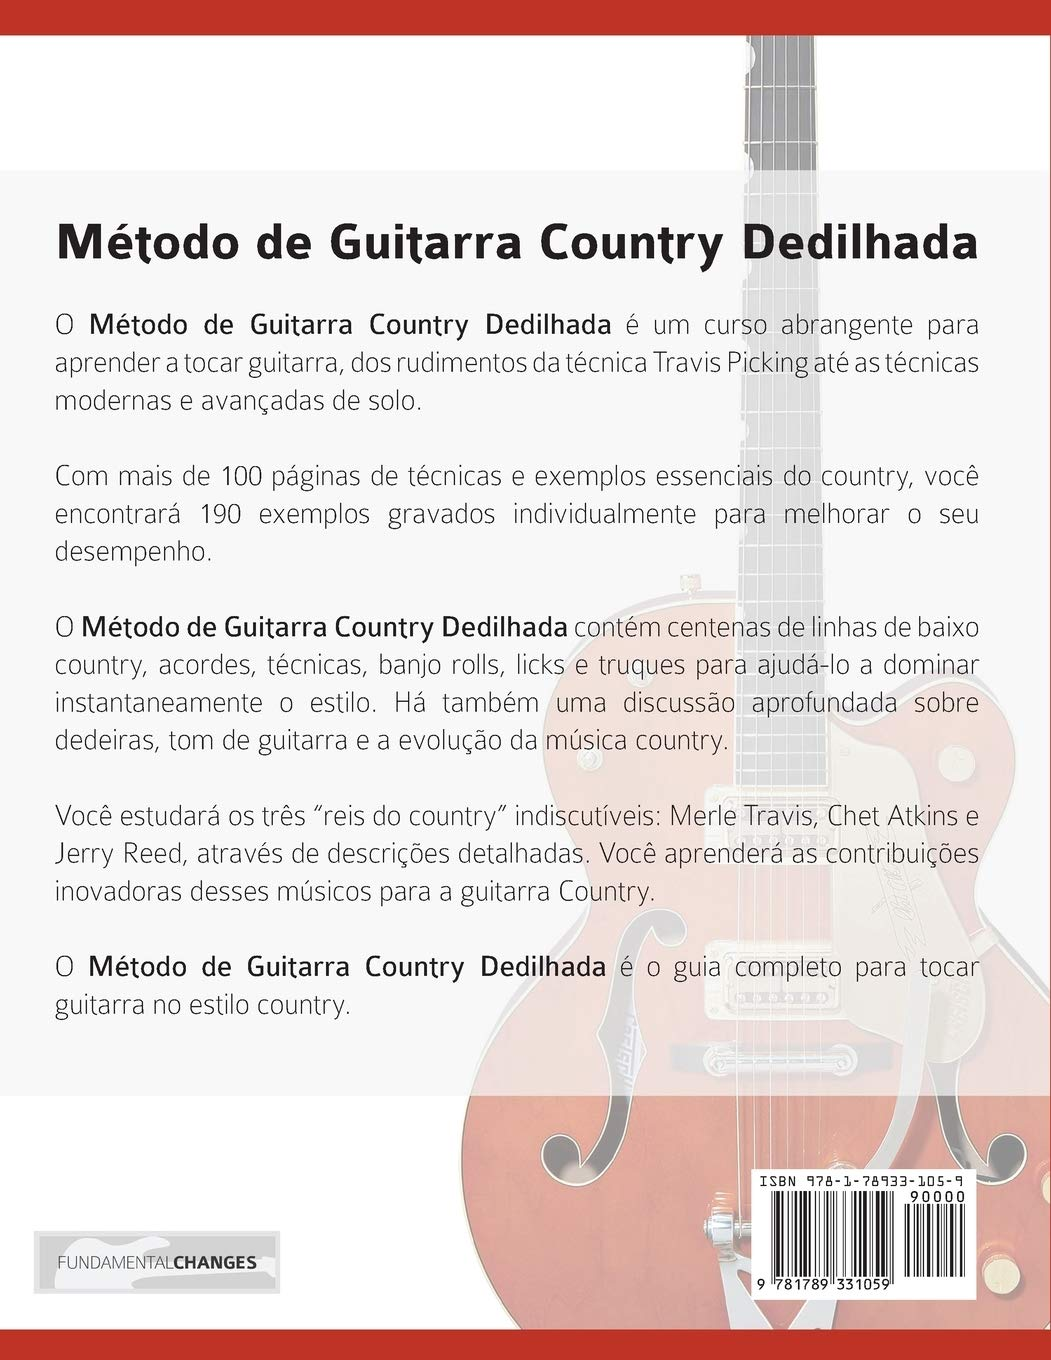 Método de Guitarra Country Dedilhada: Um guia completo do estilo Travis Picking, Guitarra Dedilhada e Solos na Guitarra Country tocar guitarra country: Amazon.es: Clay, Levi, Alexander, Joseph: Libros en idiomas extranjeros